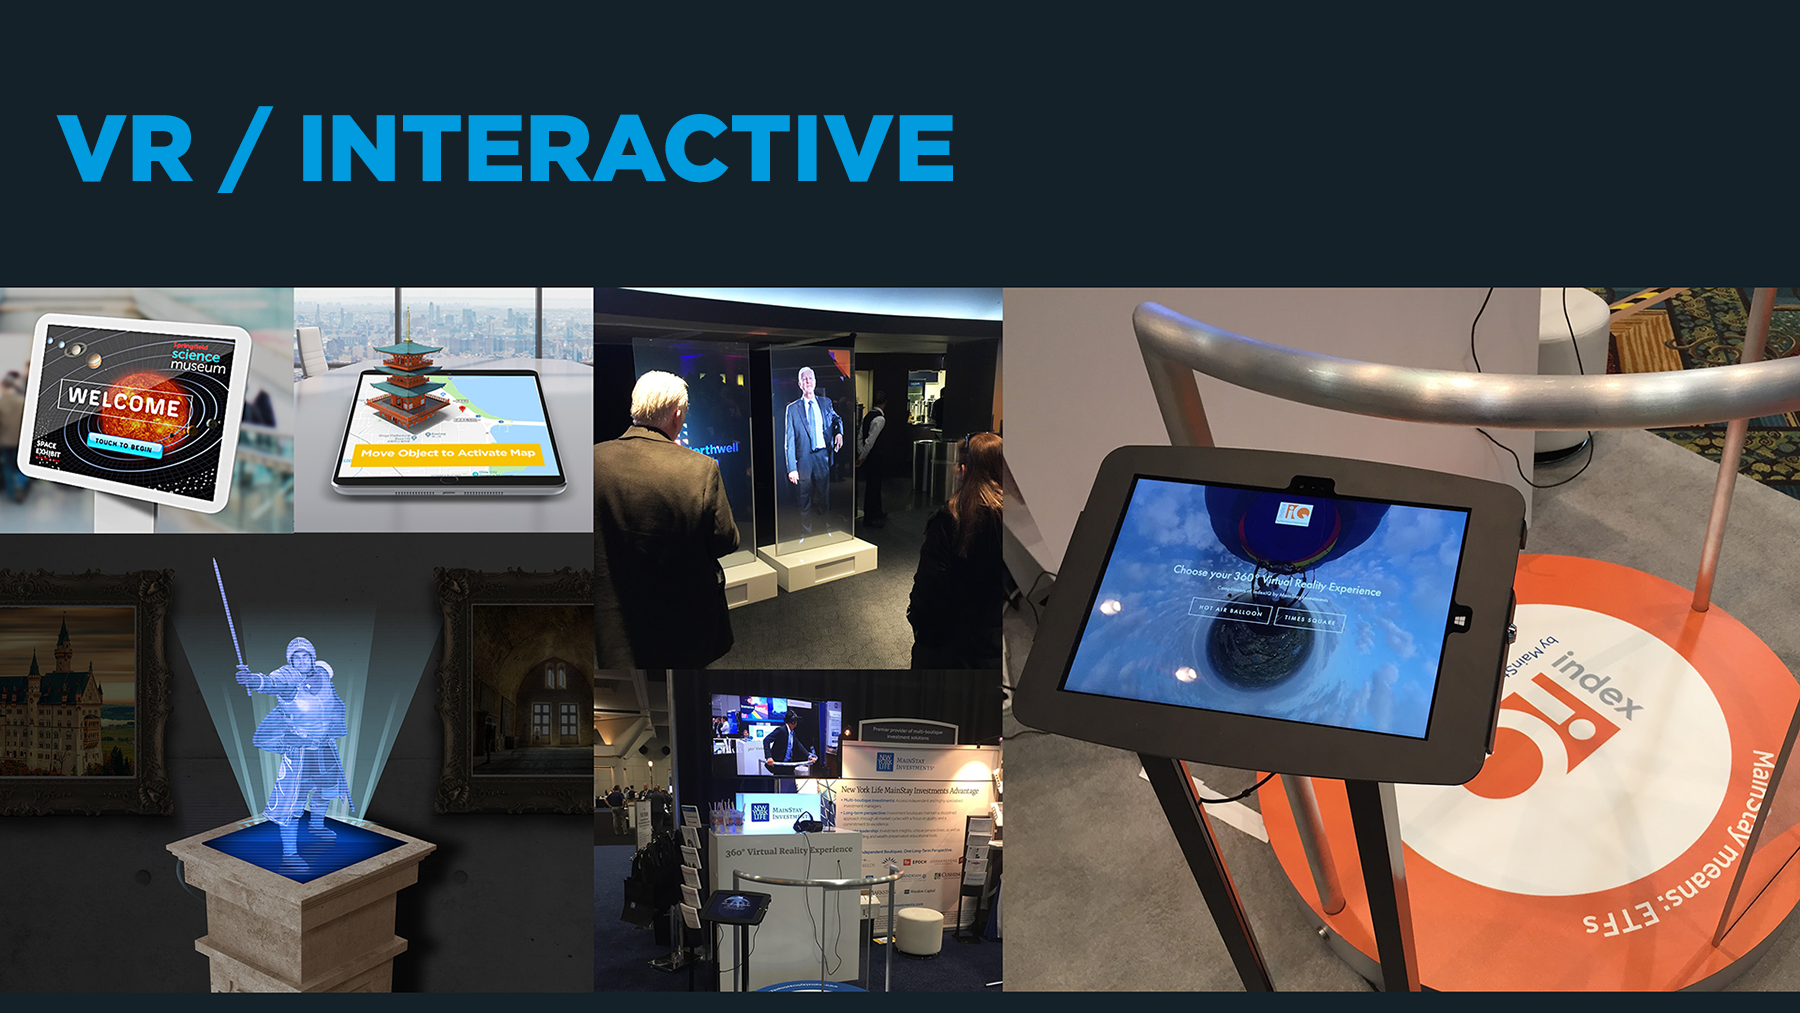 ABC Imaging - VR / Interactive